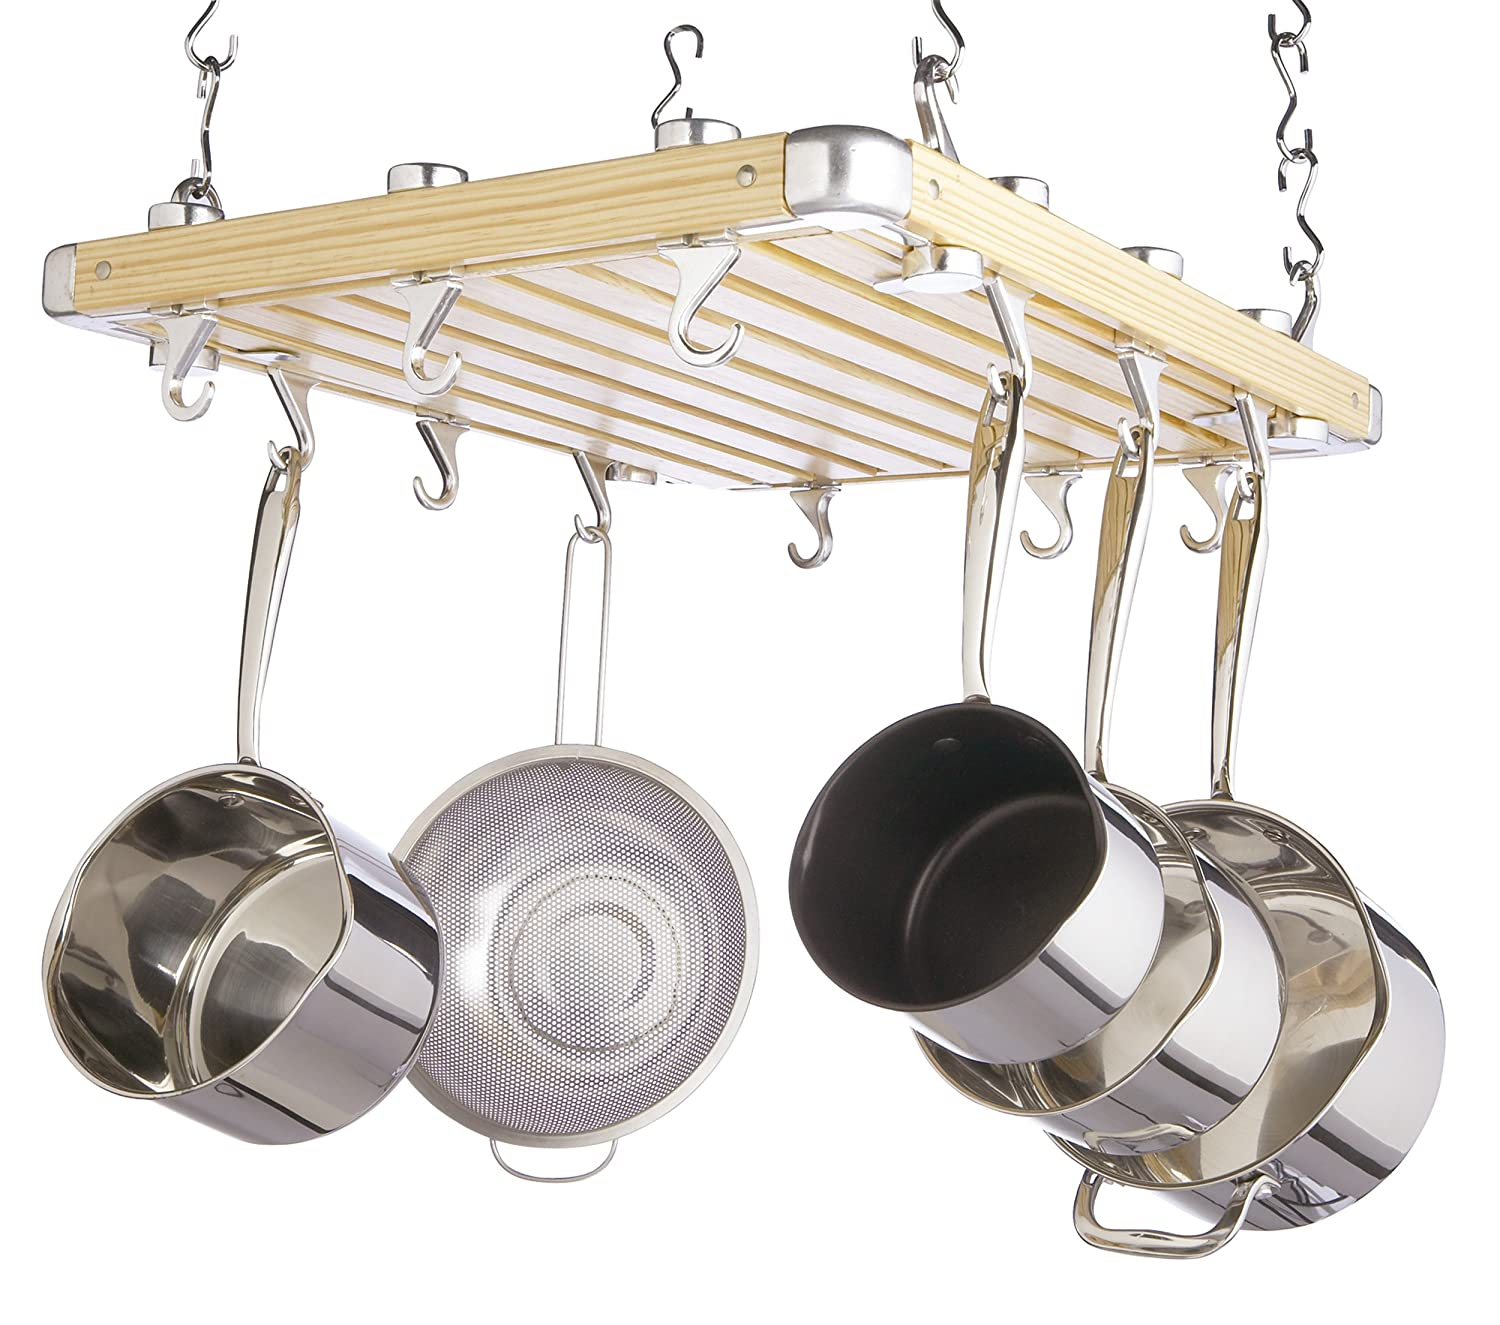 storage rack shelf organizer holder kitchen pan of hanger mount pot wall cookware